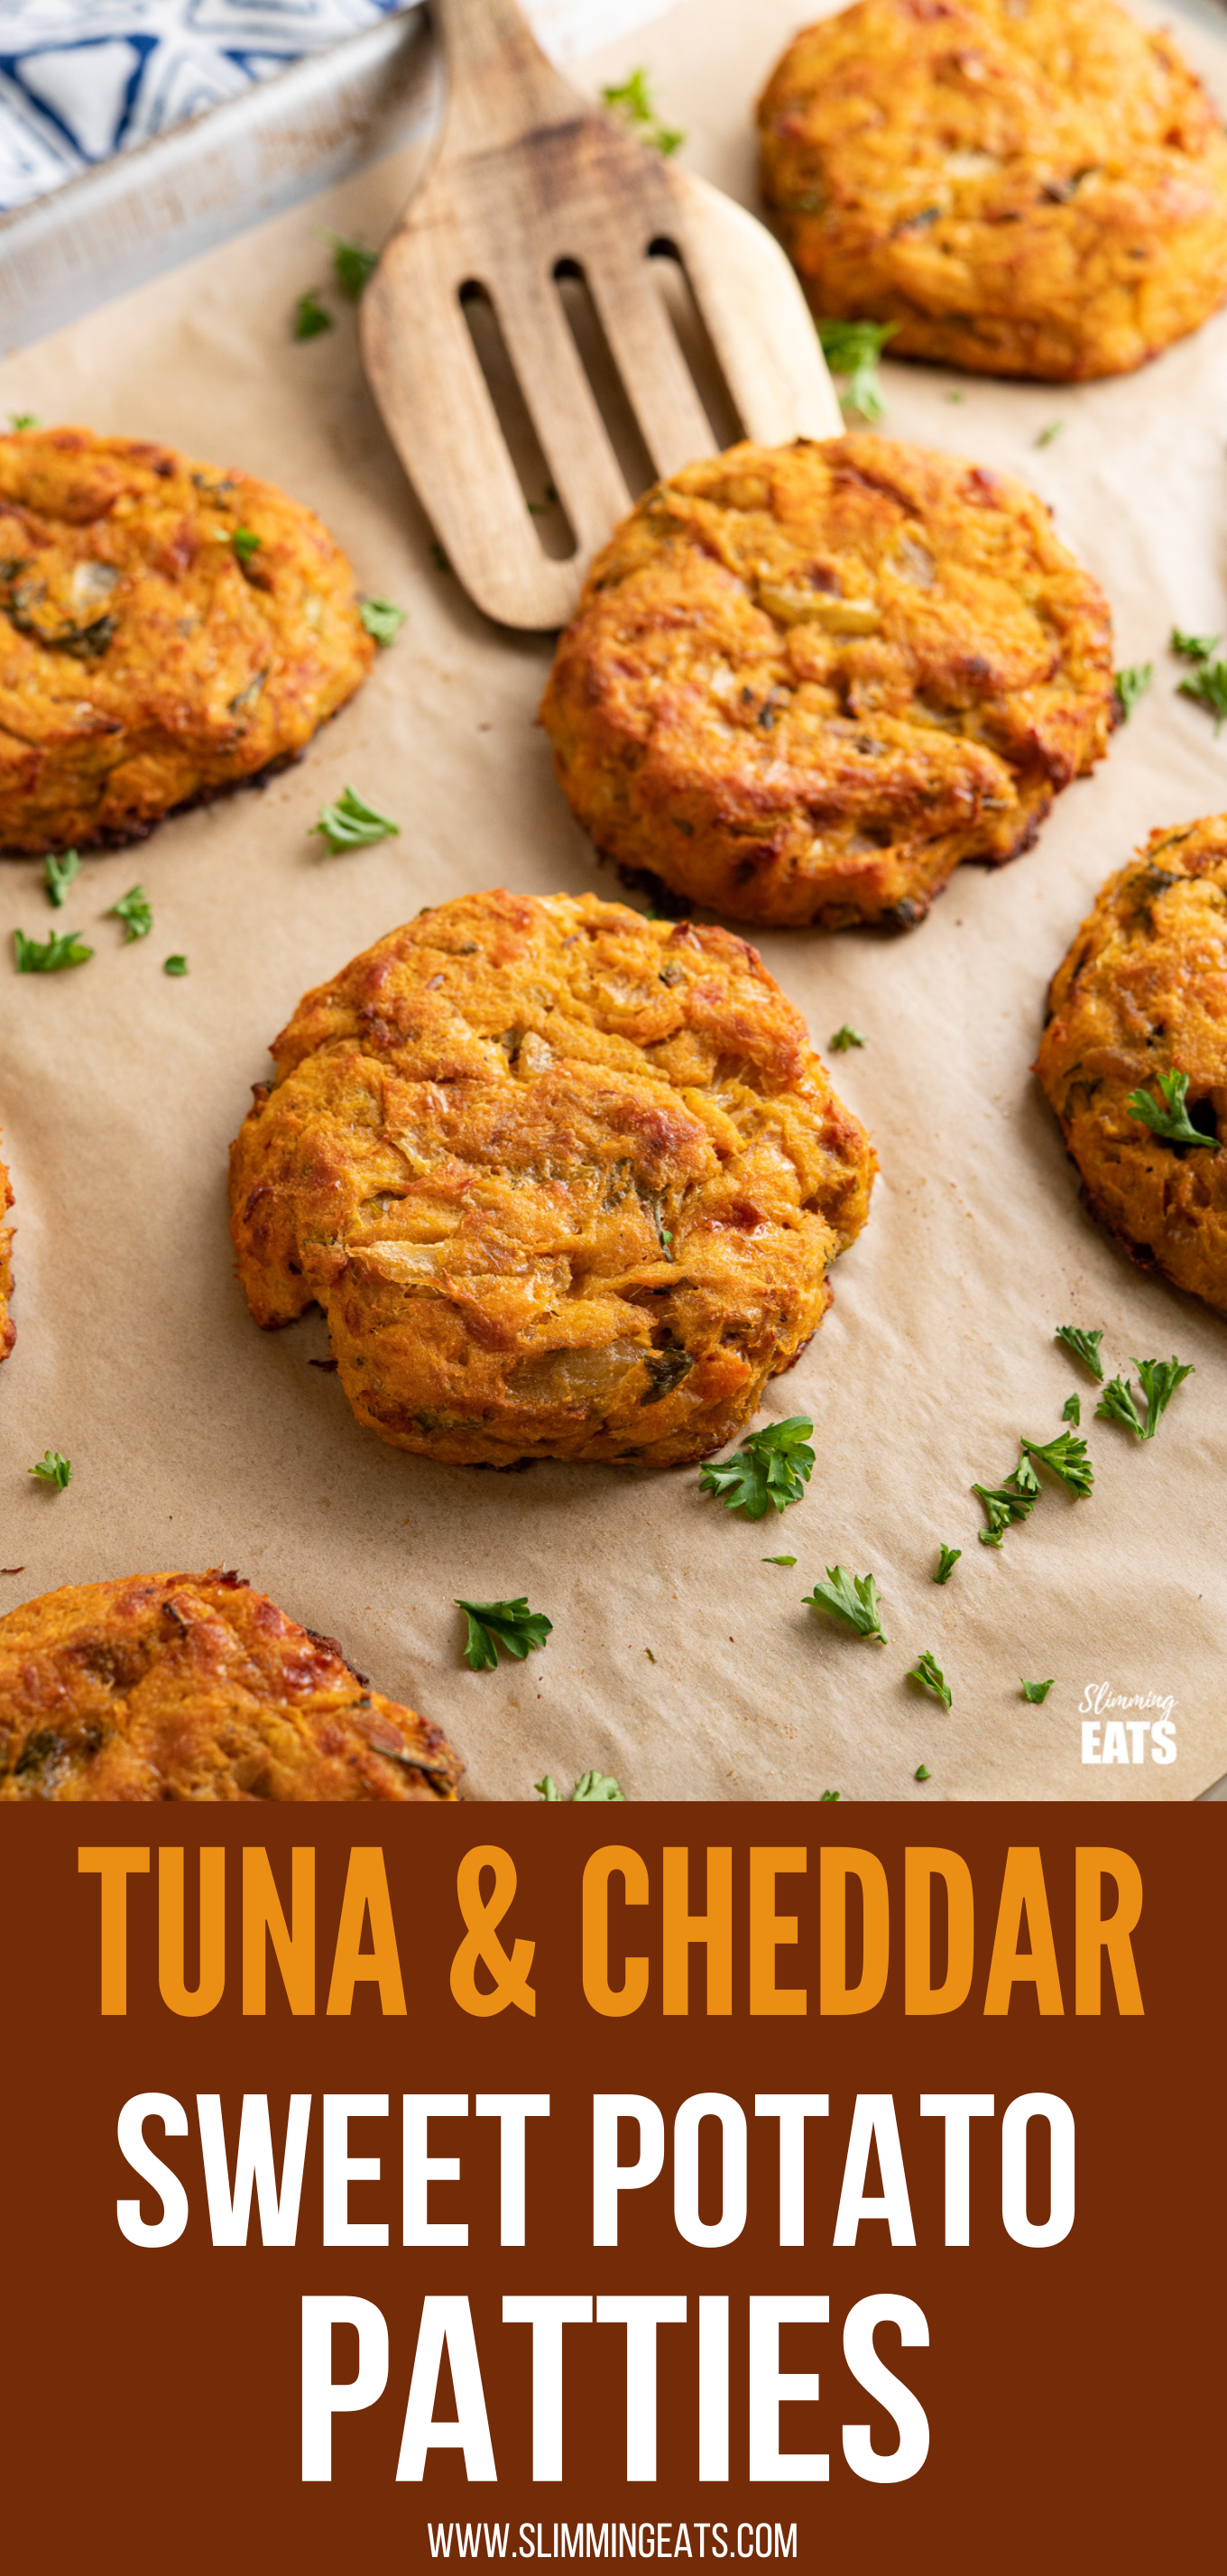 Tuna Sweet Potato Cheddar Patties on parchment lined baking tray pin image